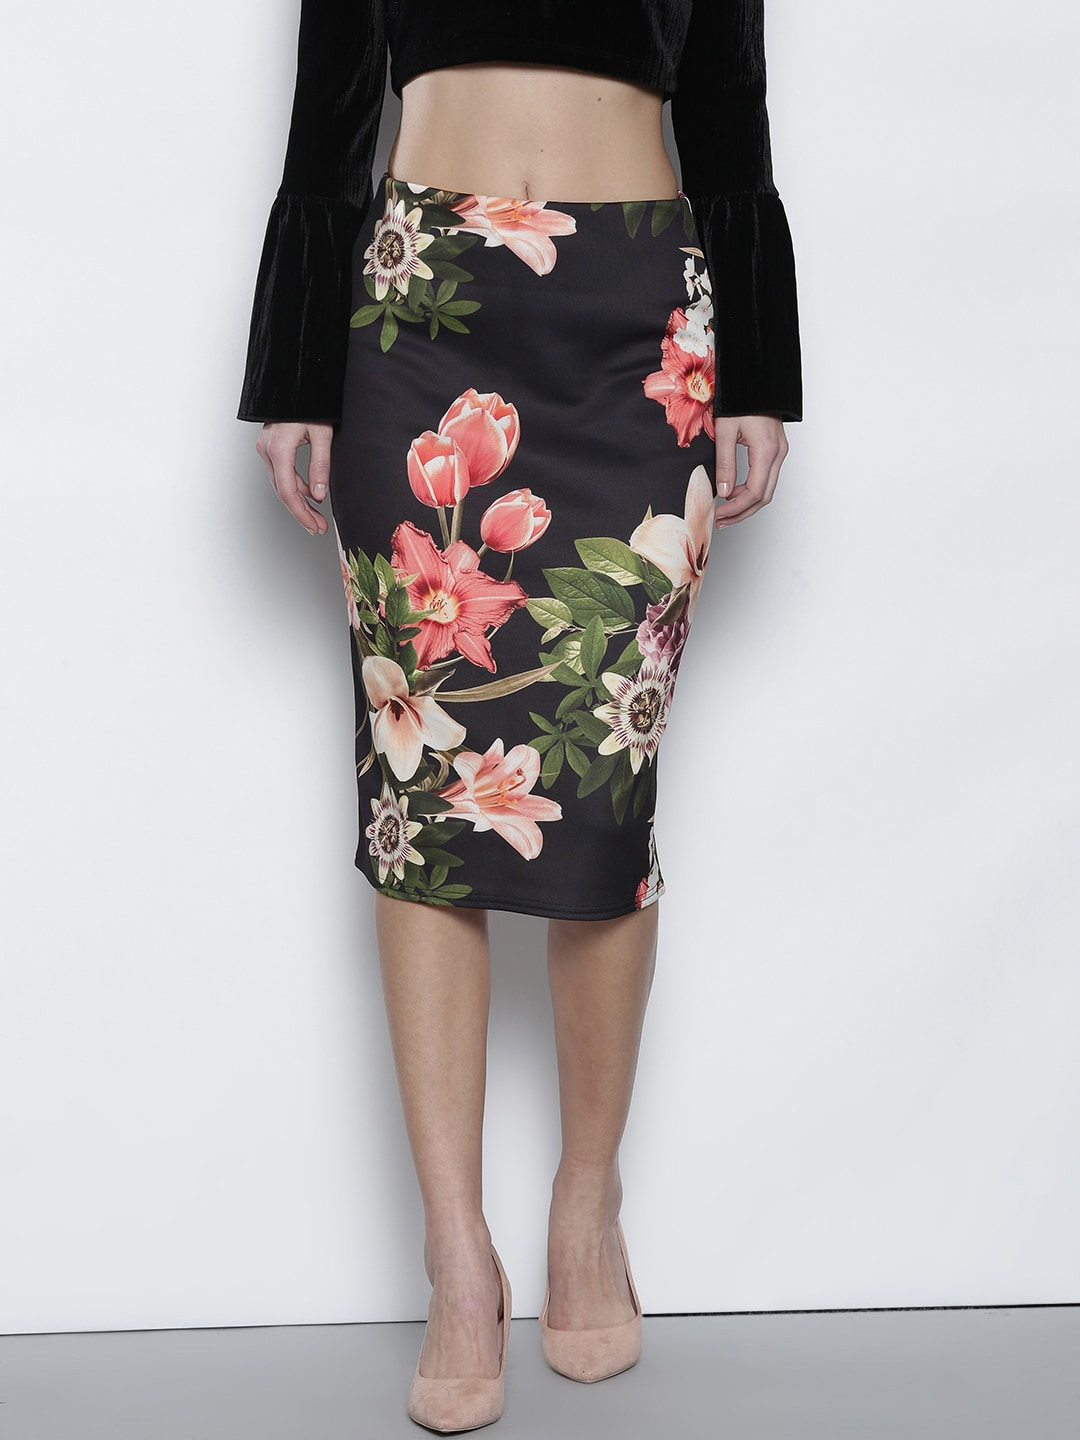 01903f881d Dorothy Perkins Black Floral Pencil Skirt for women price in India ...